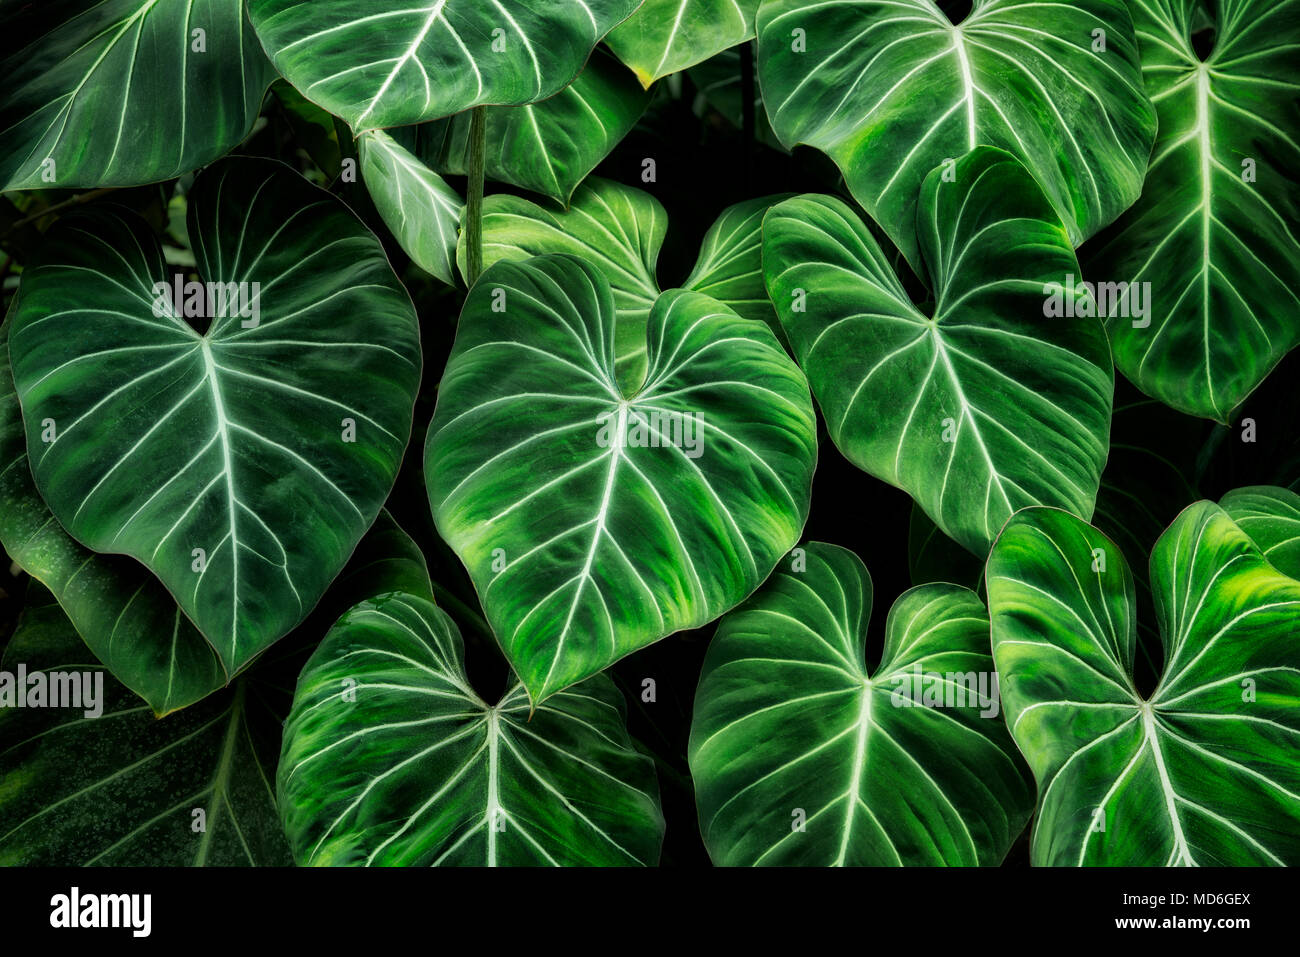 Tropical Leaves High Resolution Stock Photography And Images Alamy Leaves vector tropical leaves vector art vectors plant leaves royalty free stock photos design inspiration illustration creative. https www alamy com tropical leaves princeville botanical gardens kauai hawaii image180238882 html